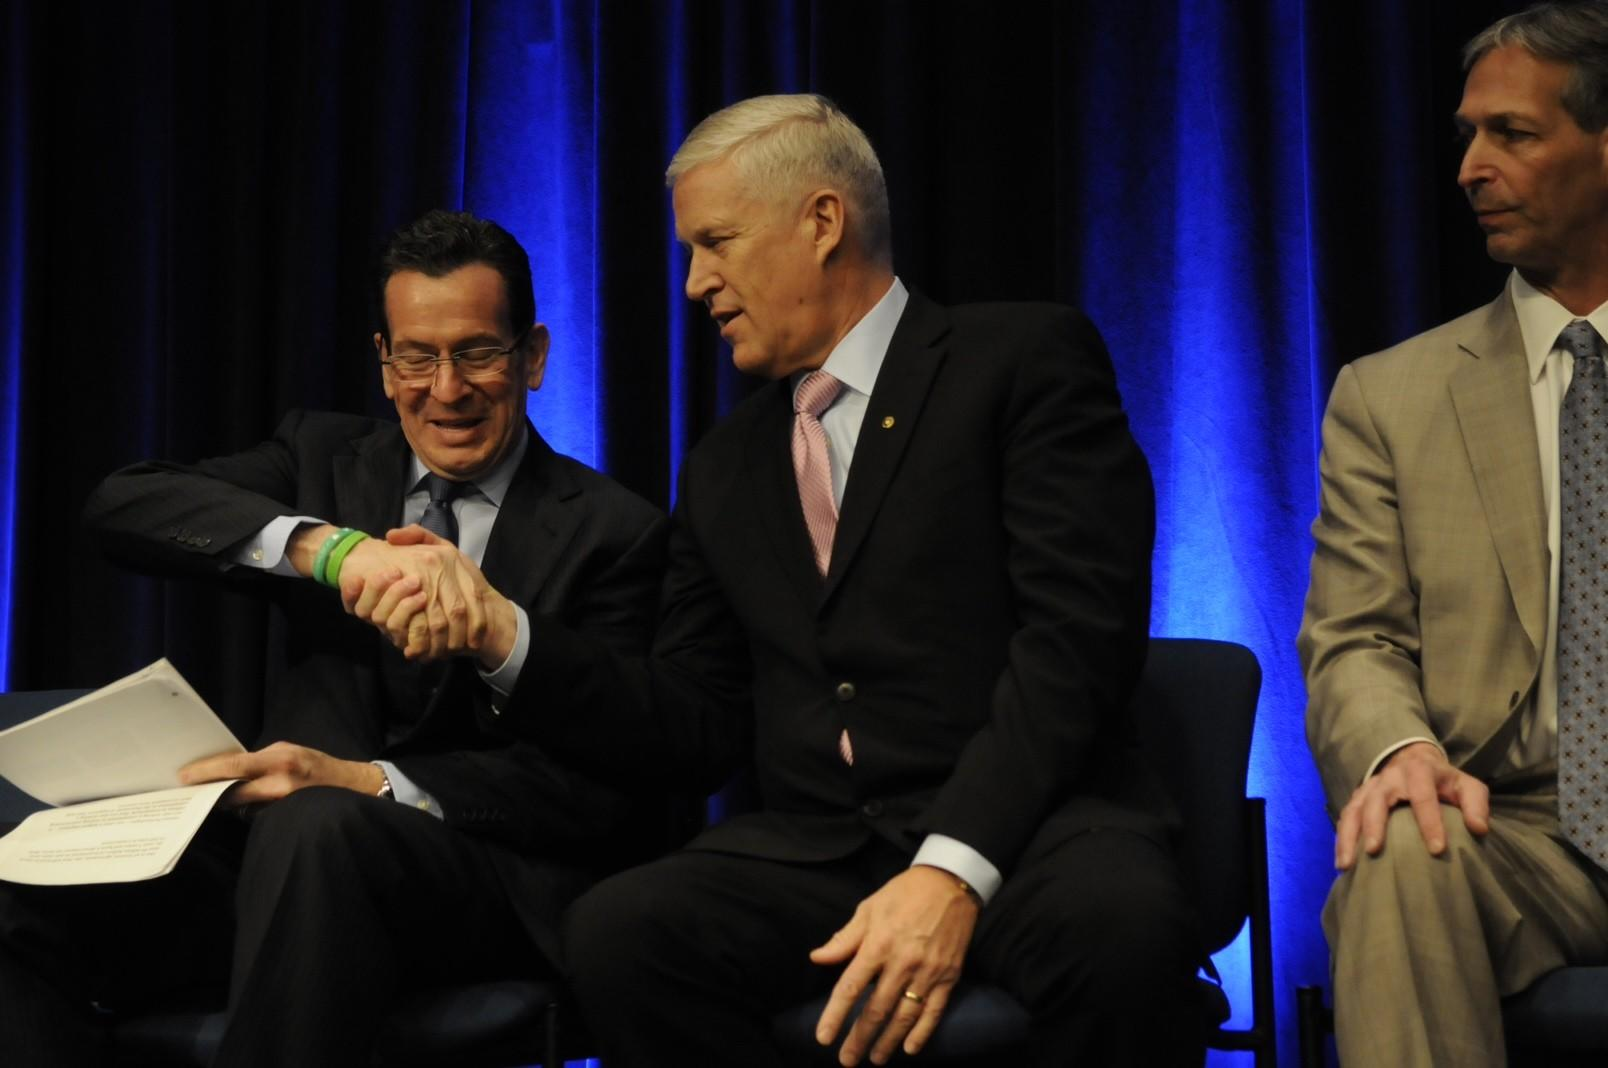 UTC's CEO, Louis Chnevert, shakes Gov. Malloy's hand at Wednesday's press conference.